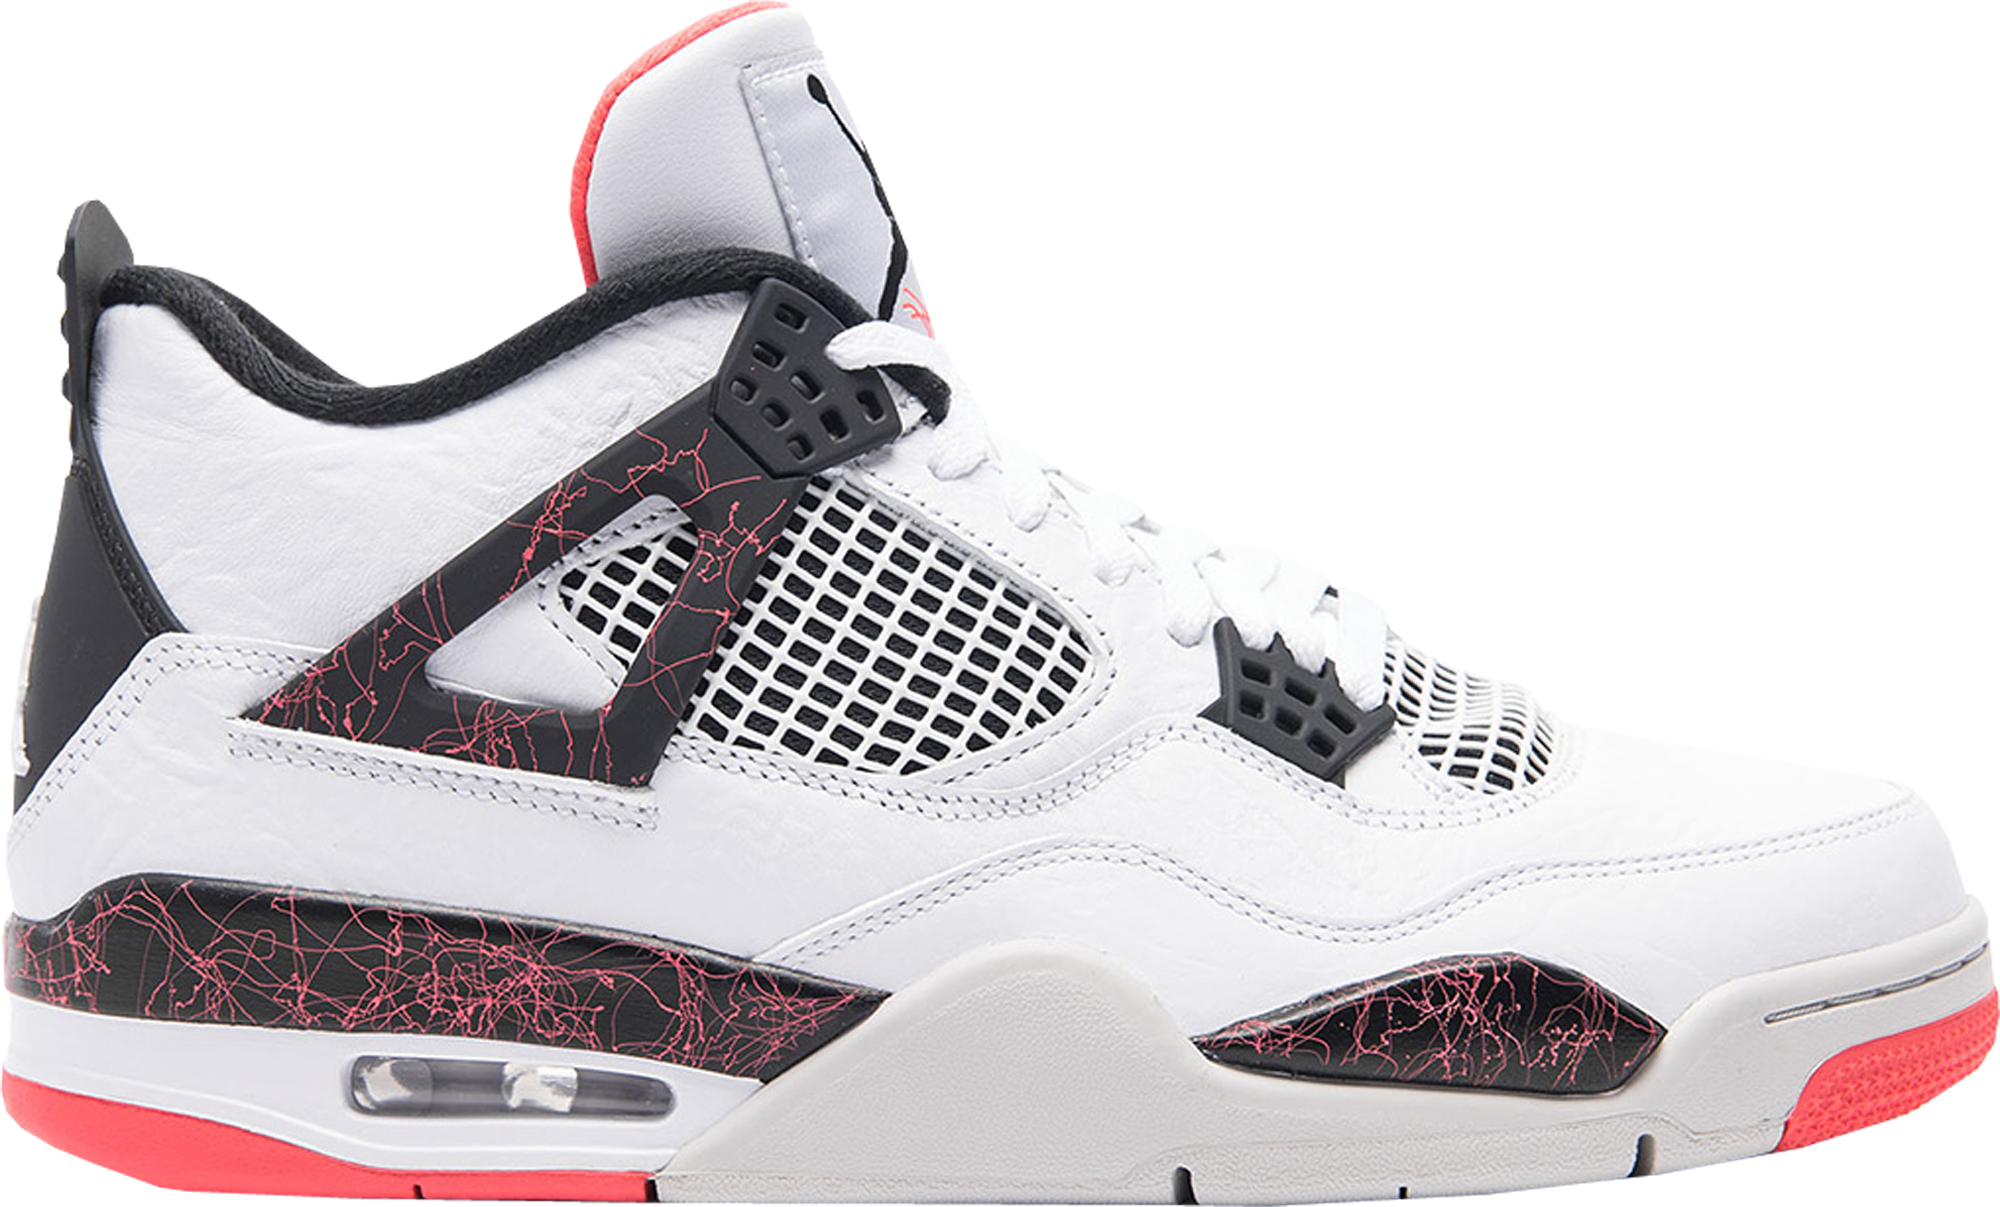 Jordan 4 Retro White Black Bright Crimson